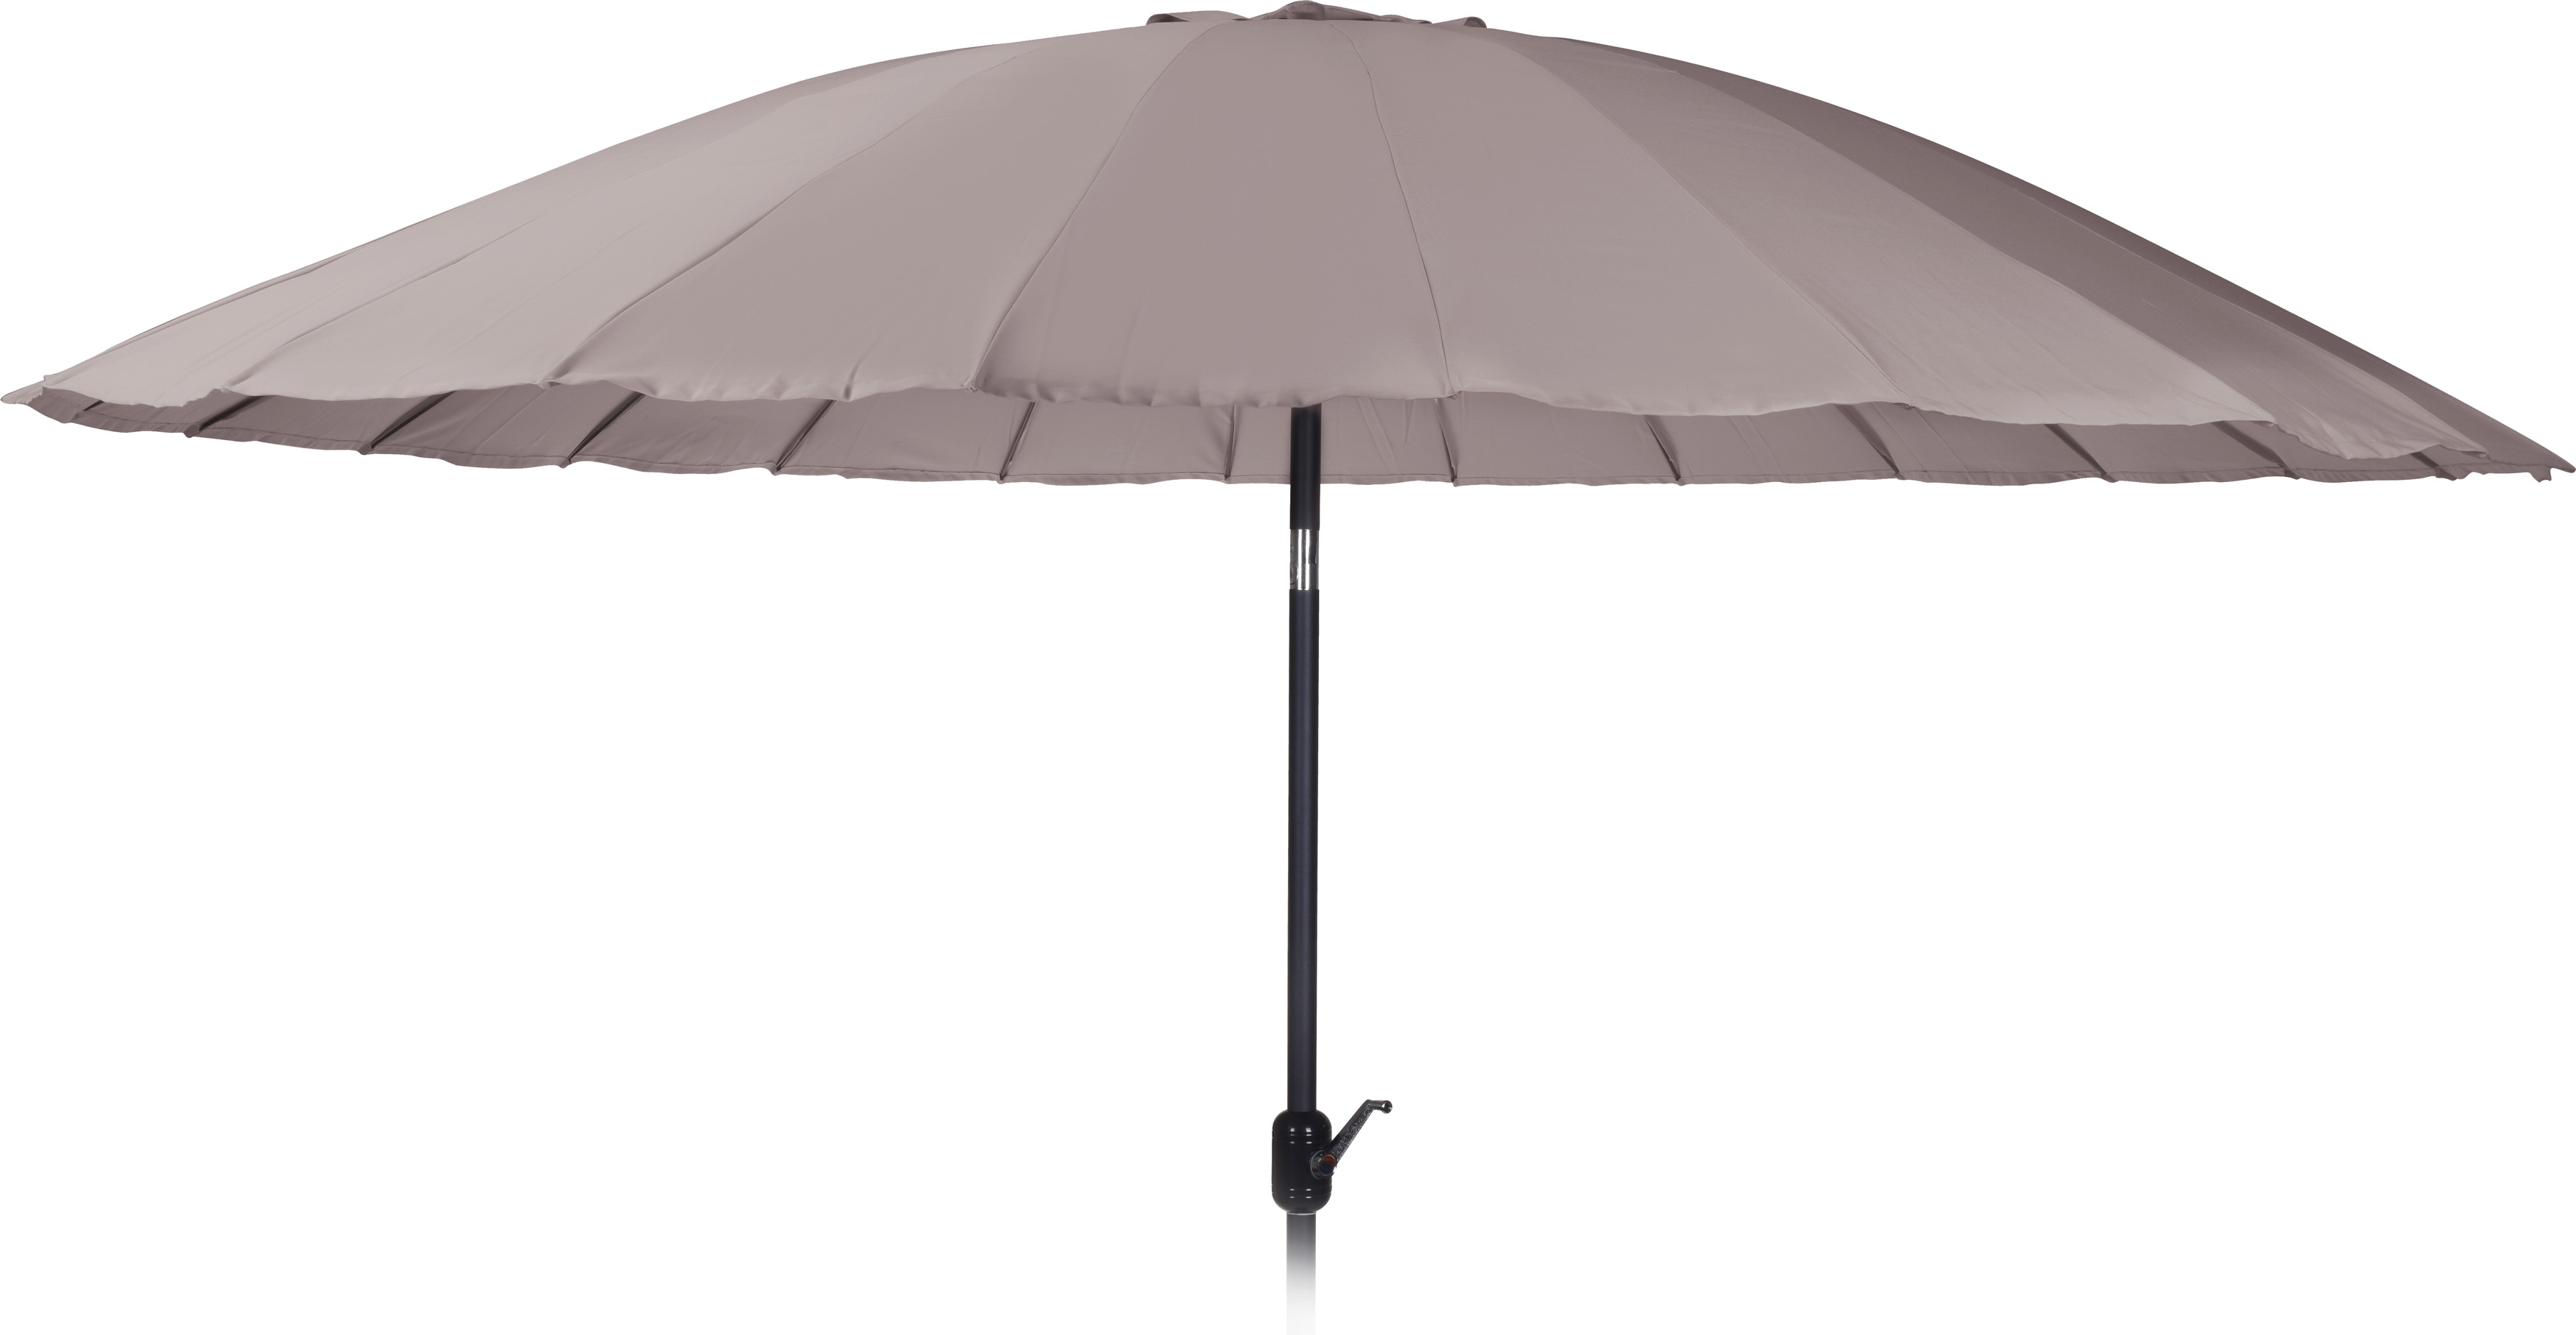 Ambiance Parasol Shanghai 325cm Taupe